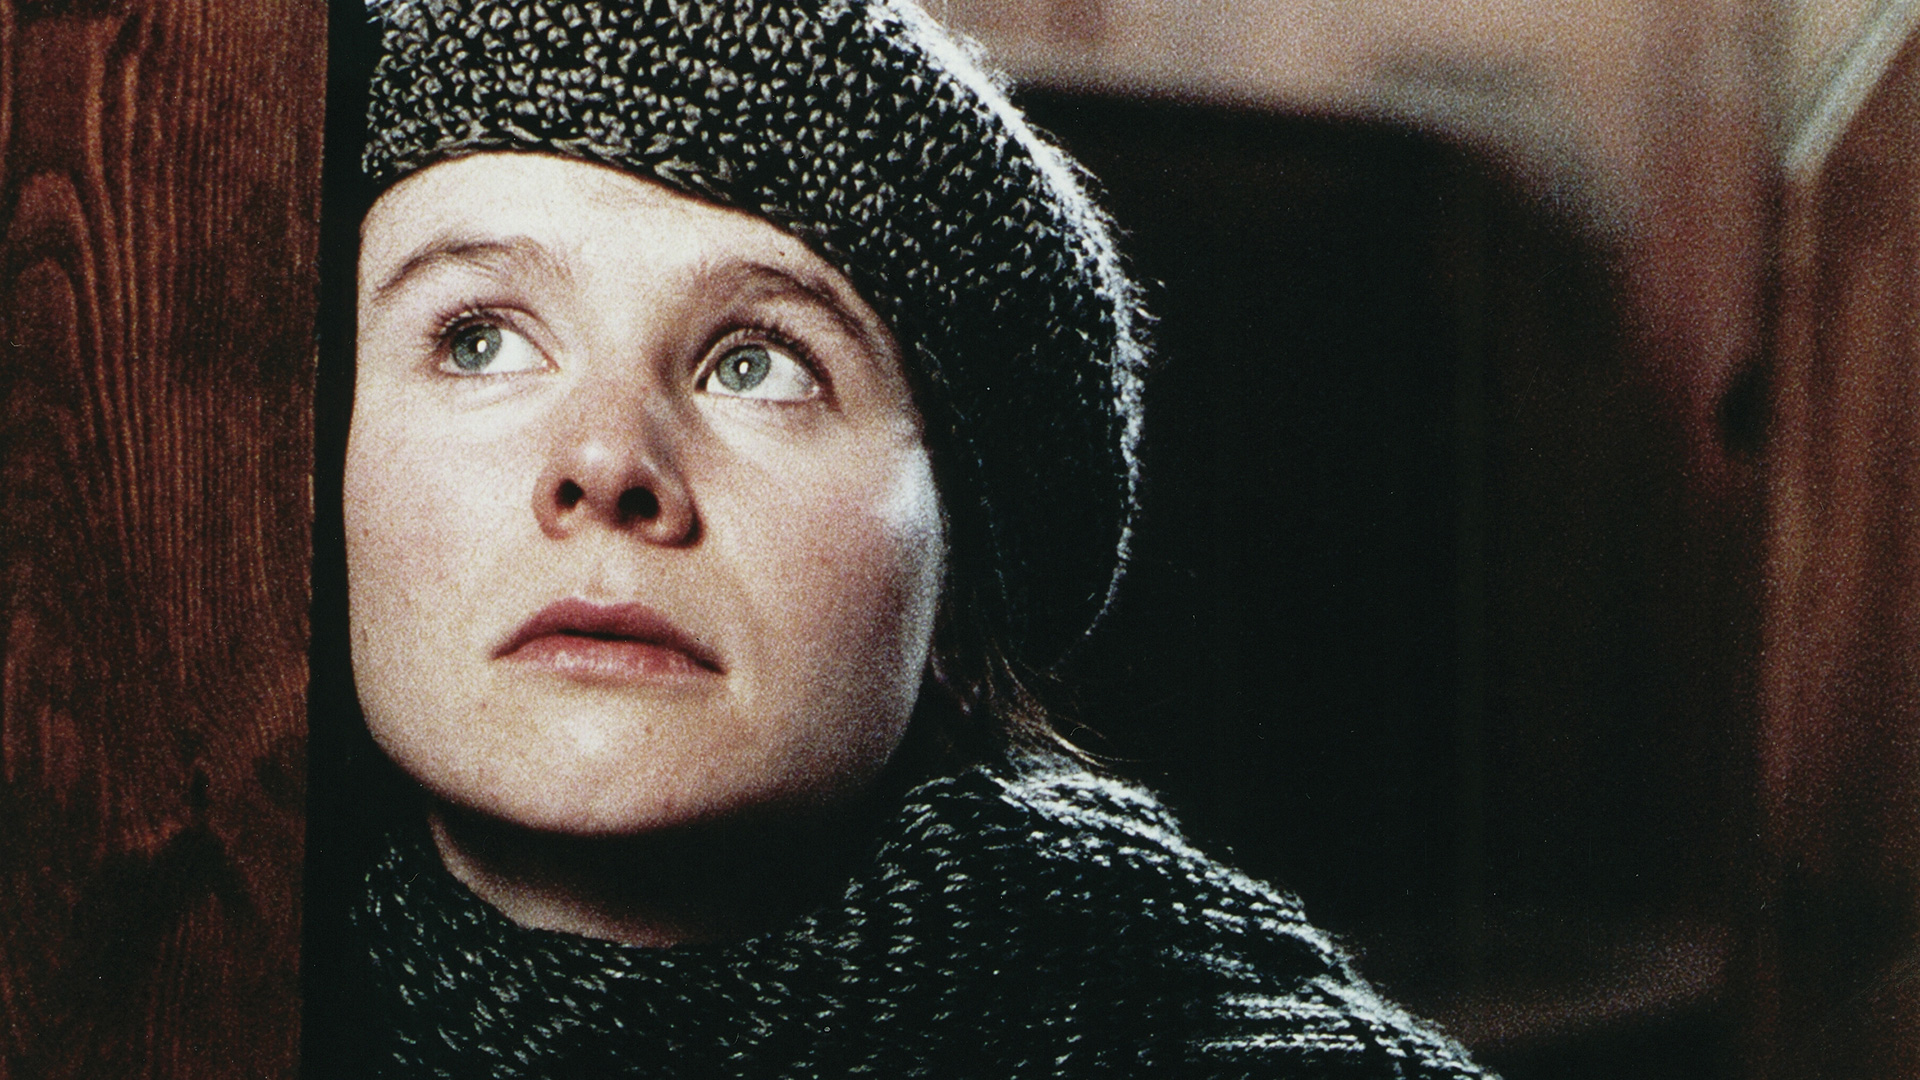 Breaking the Waves - Curzon Artificial Eye